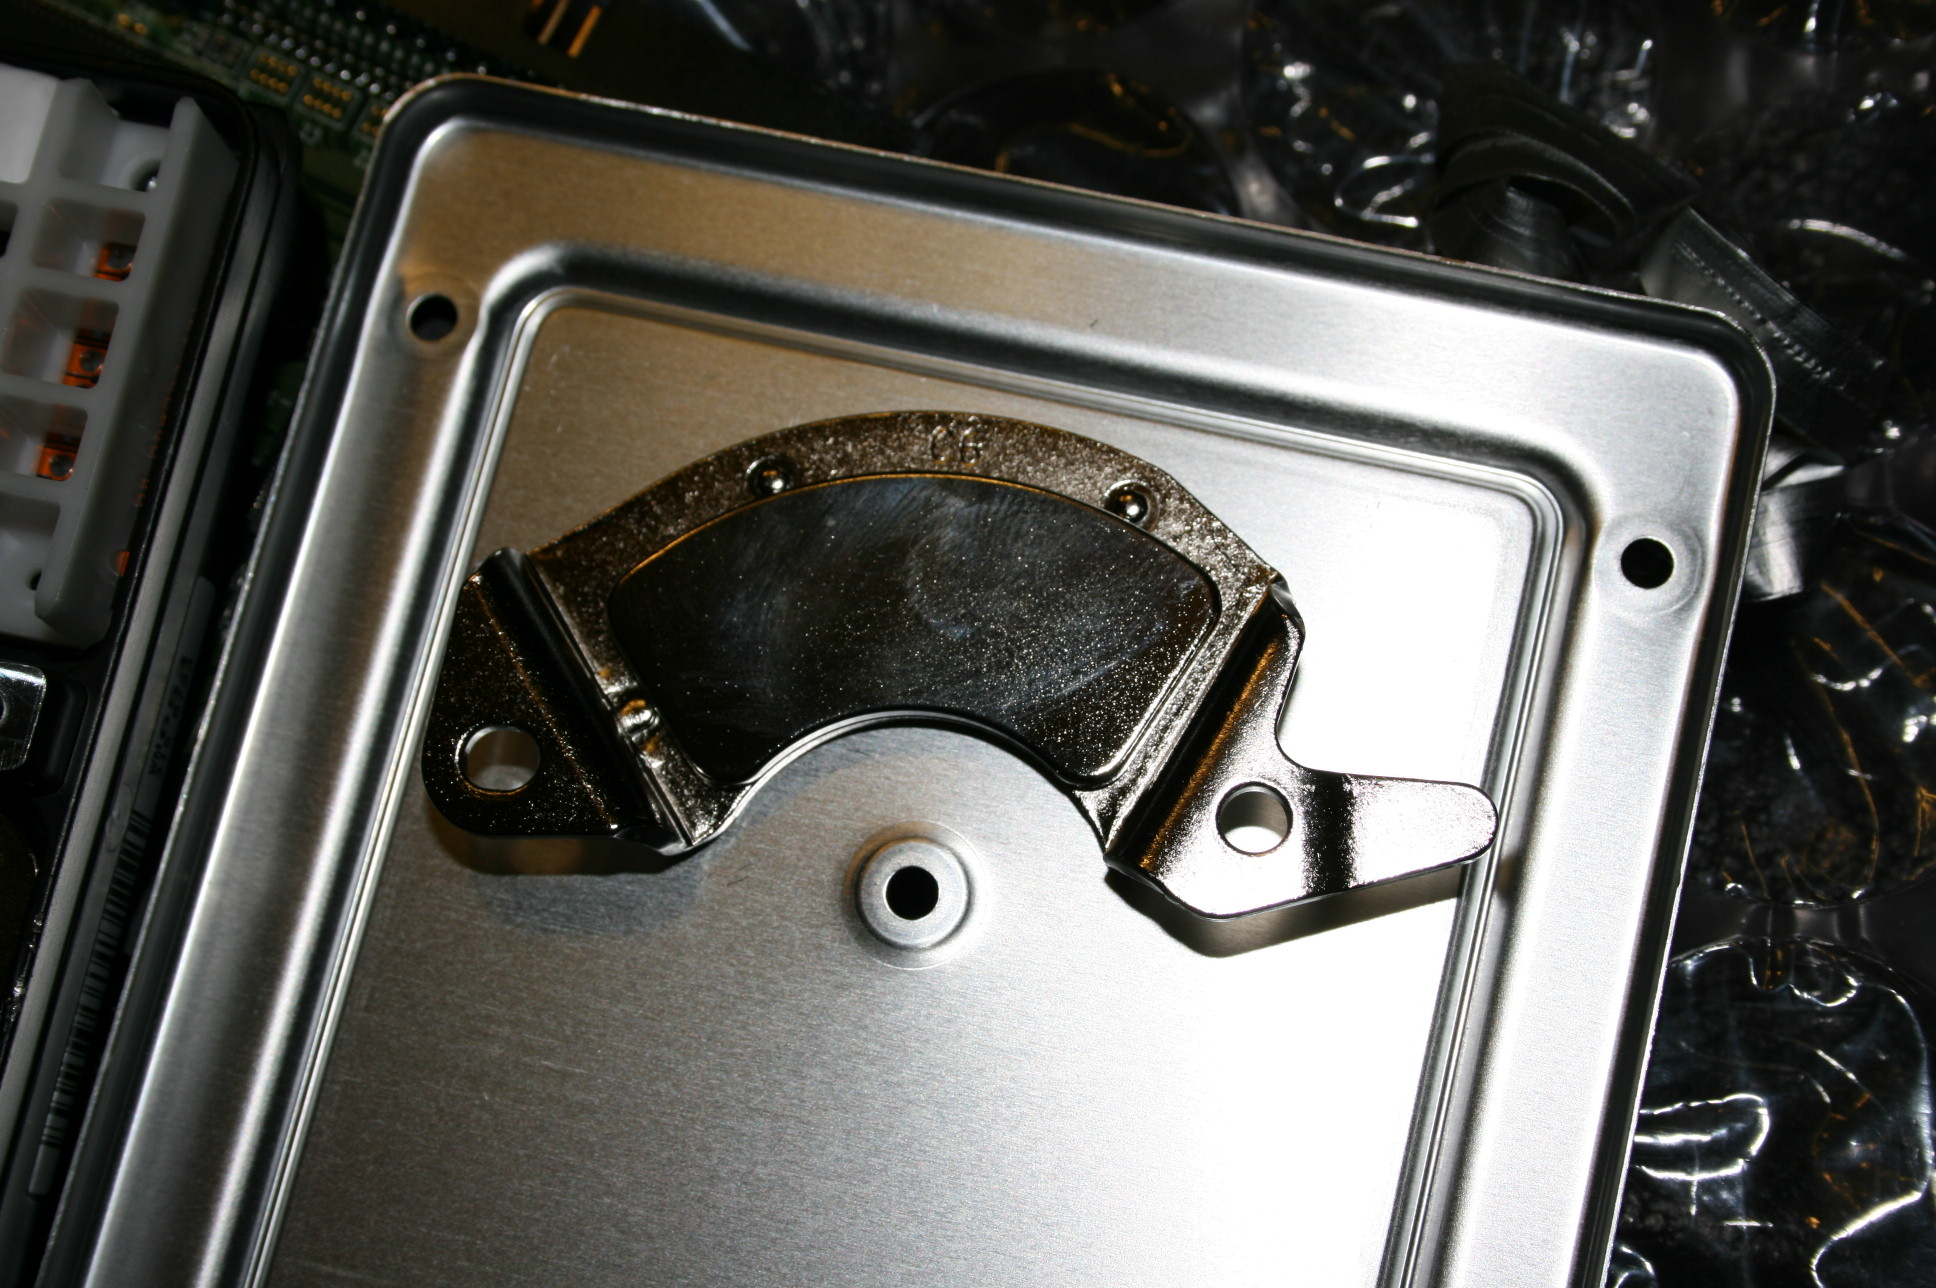 Picture of Removing the Magnets